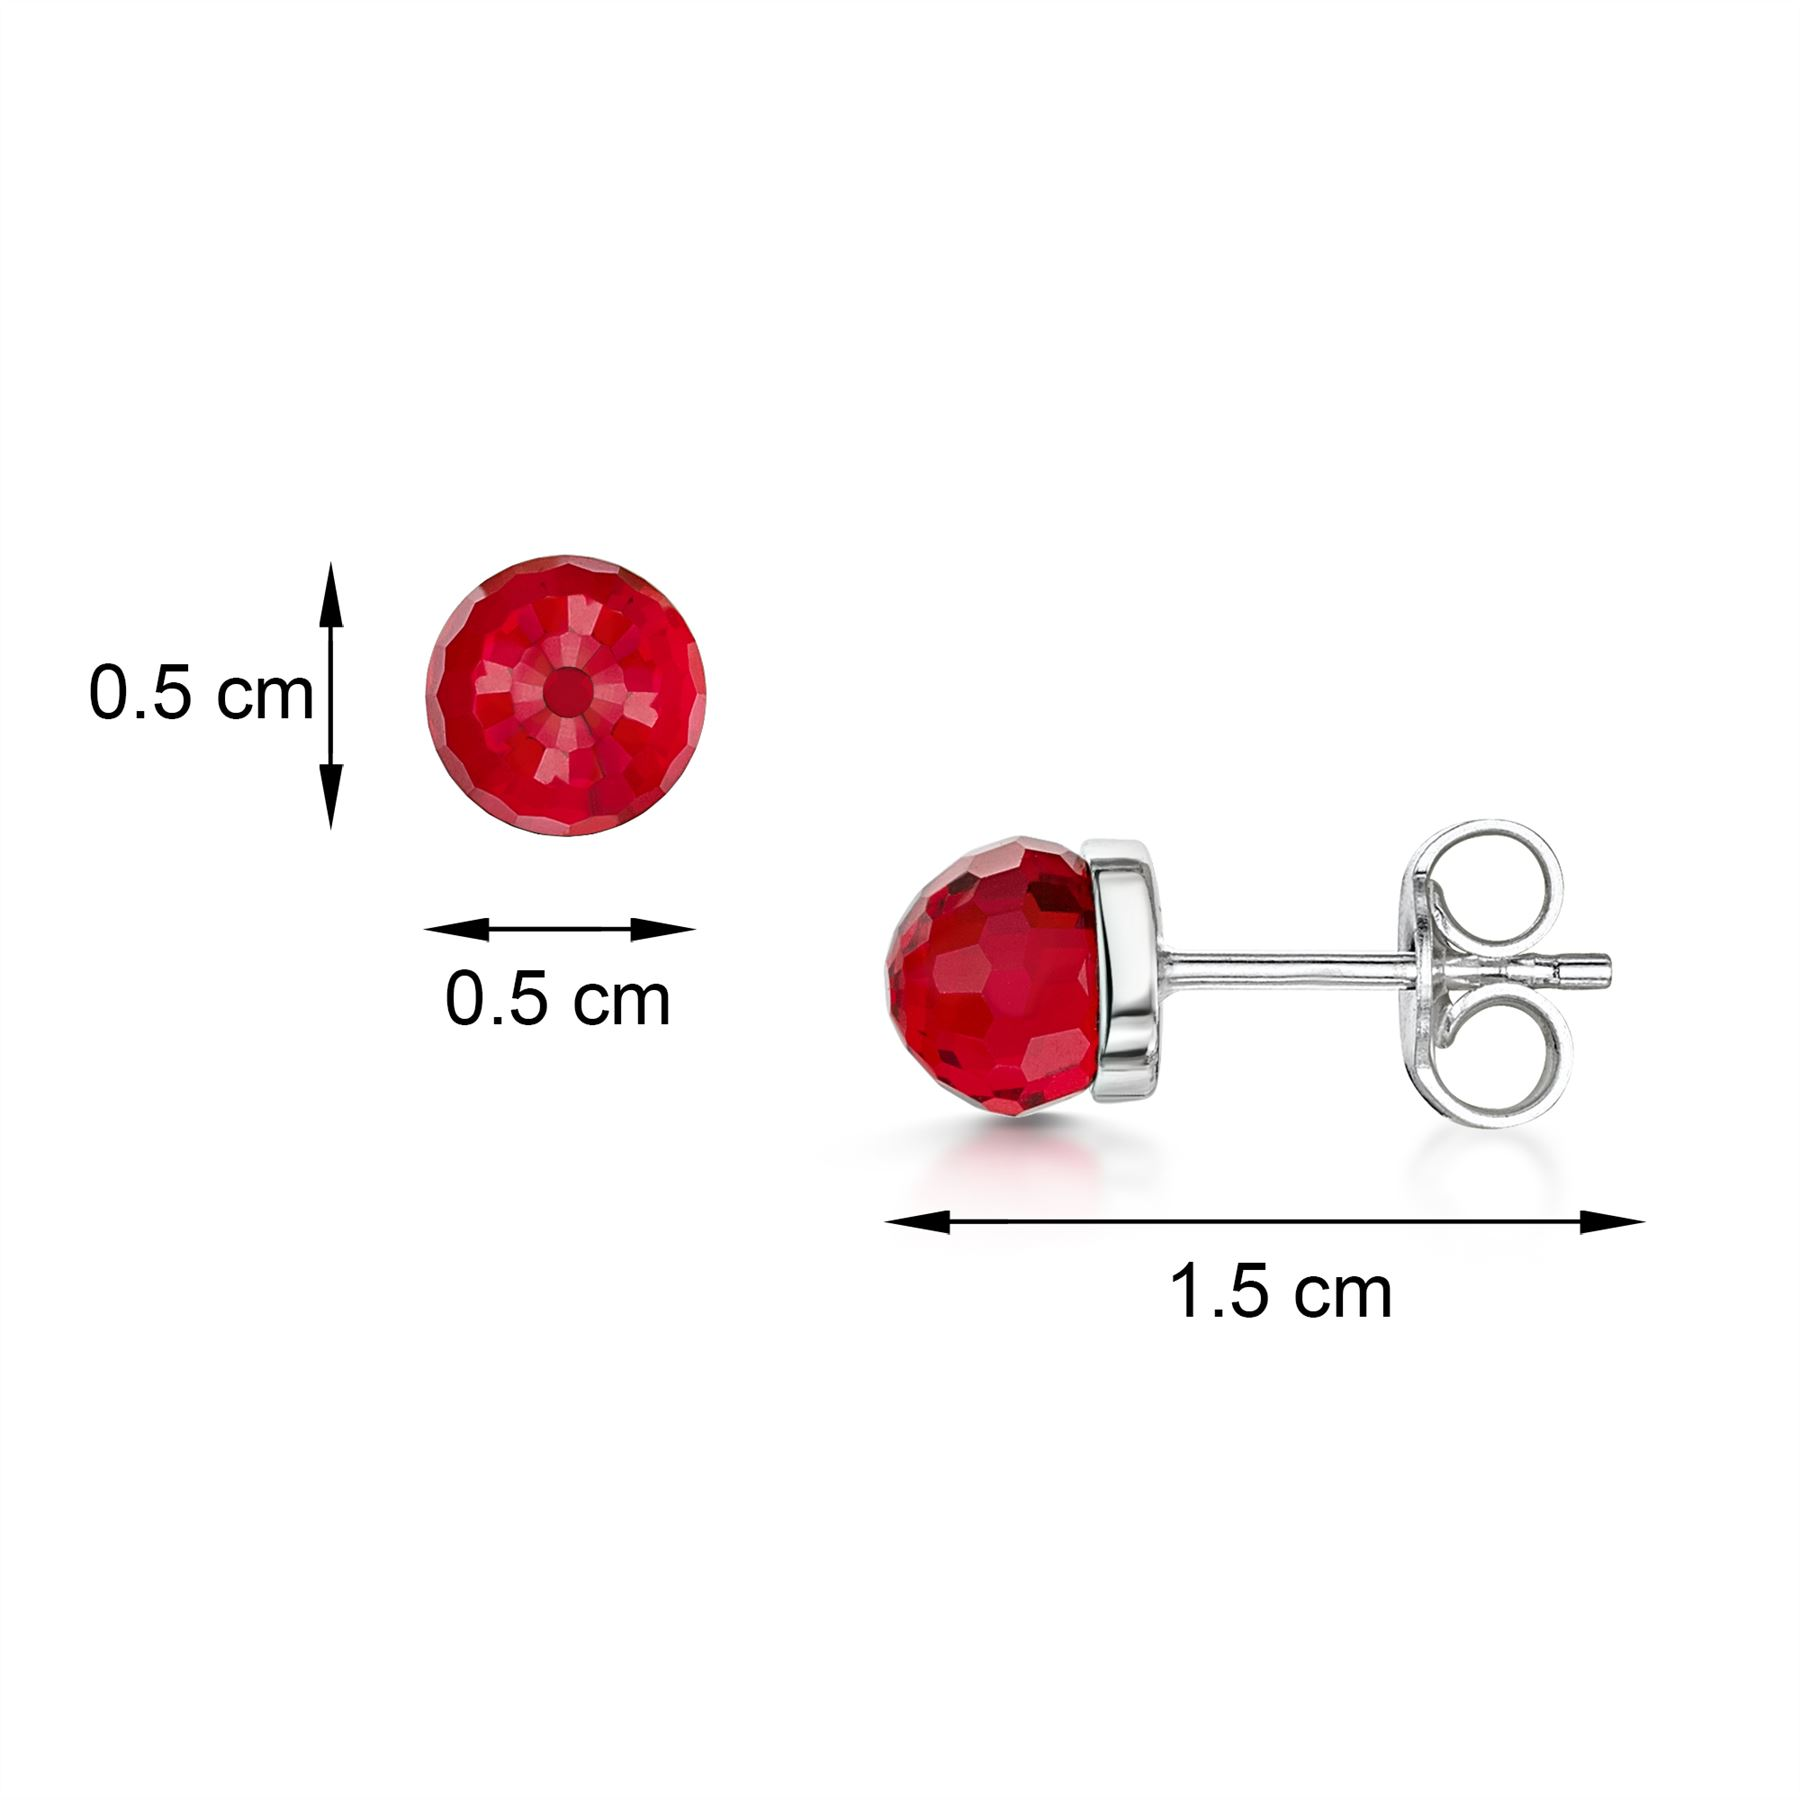 Amberta-925-Sterling-Silver-Earrings-Pair-of-Studs-for-Women-with-5-mm-Gemstones thumbnail 9